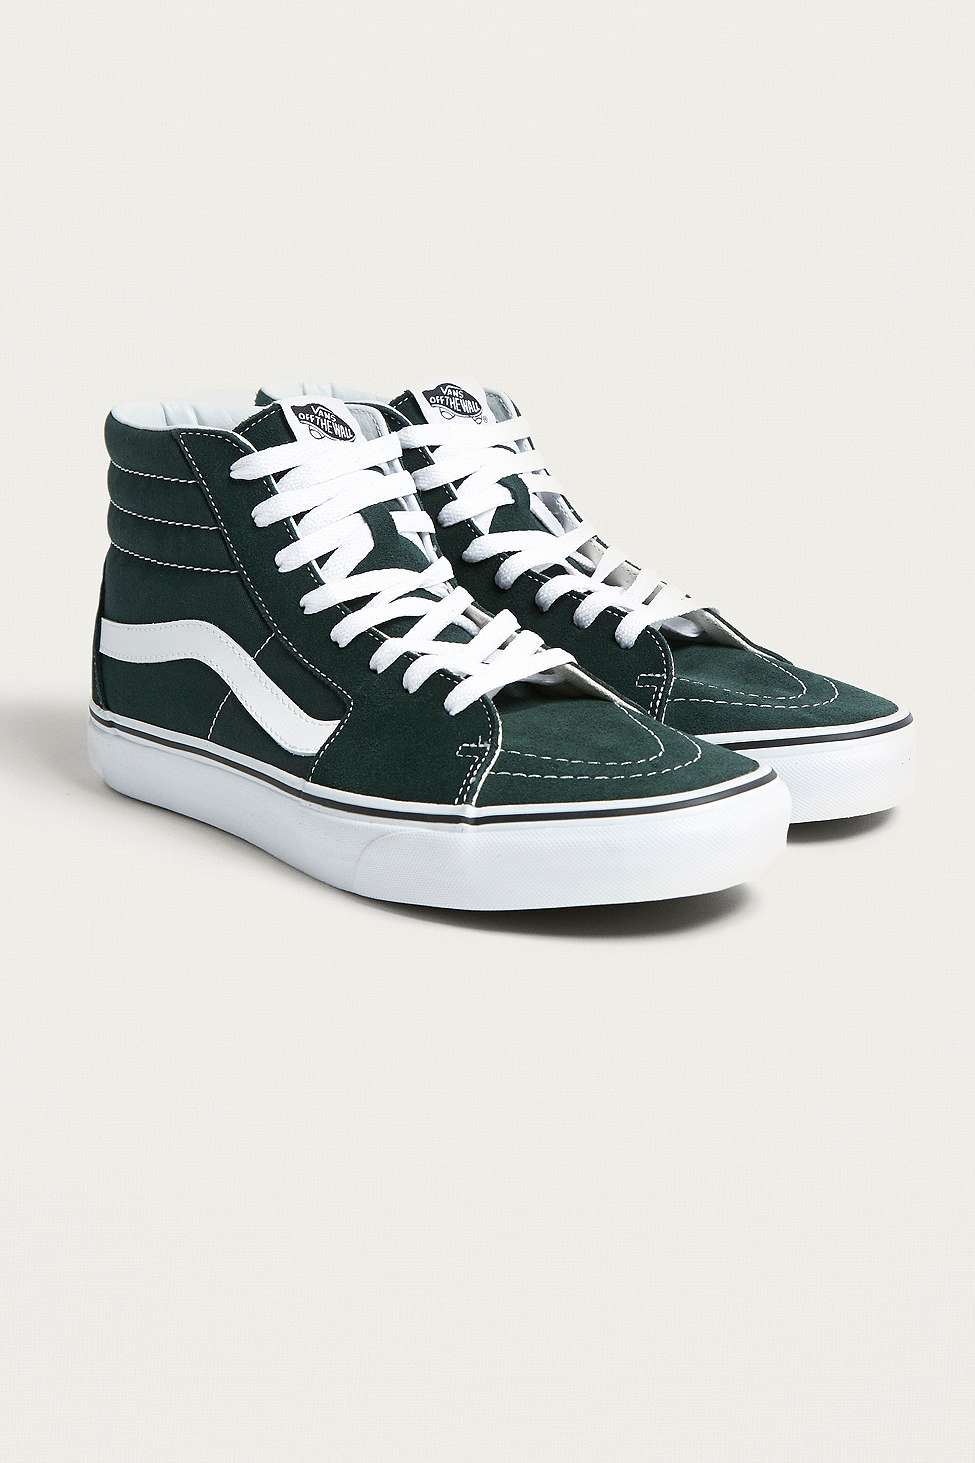 bcff34b242 Sk8-Hi Green Trainers by Vans — Thread